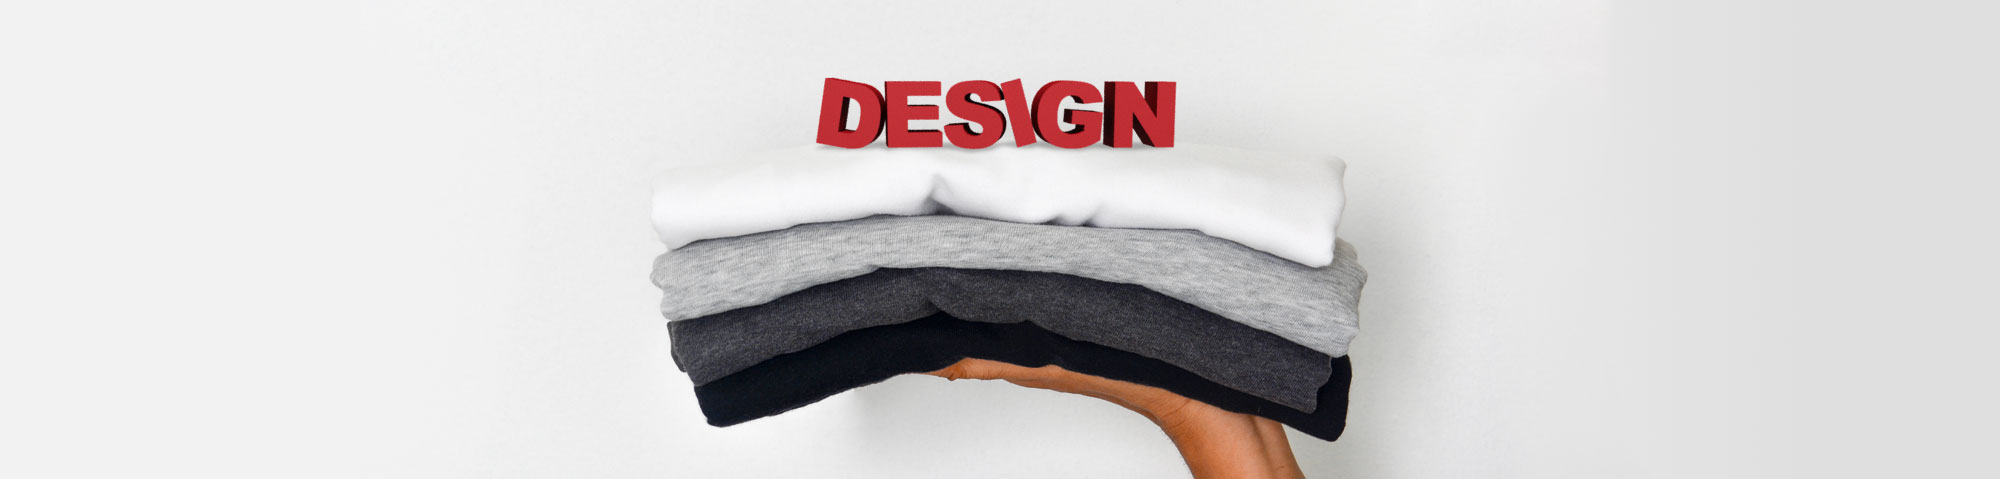 How ToMake ADesign FitPerfectly On A T-Shirt